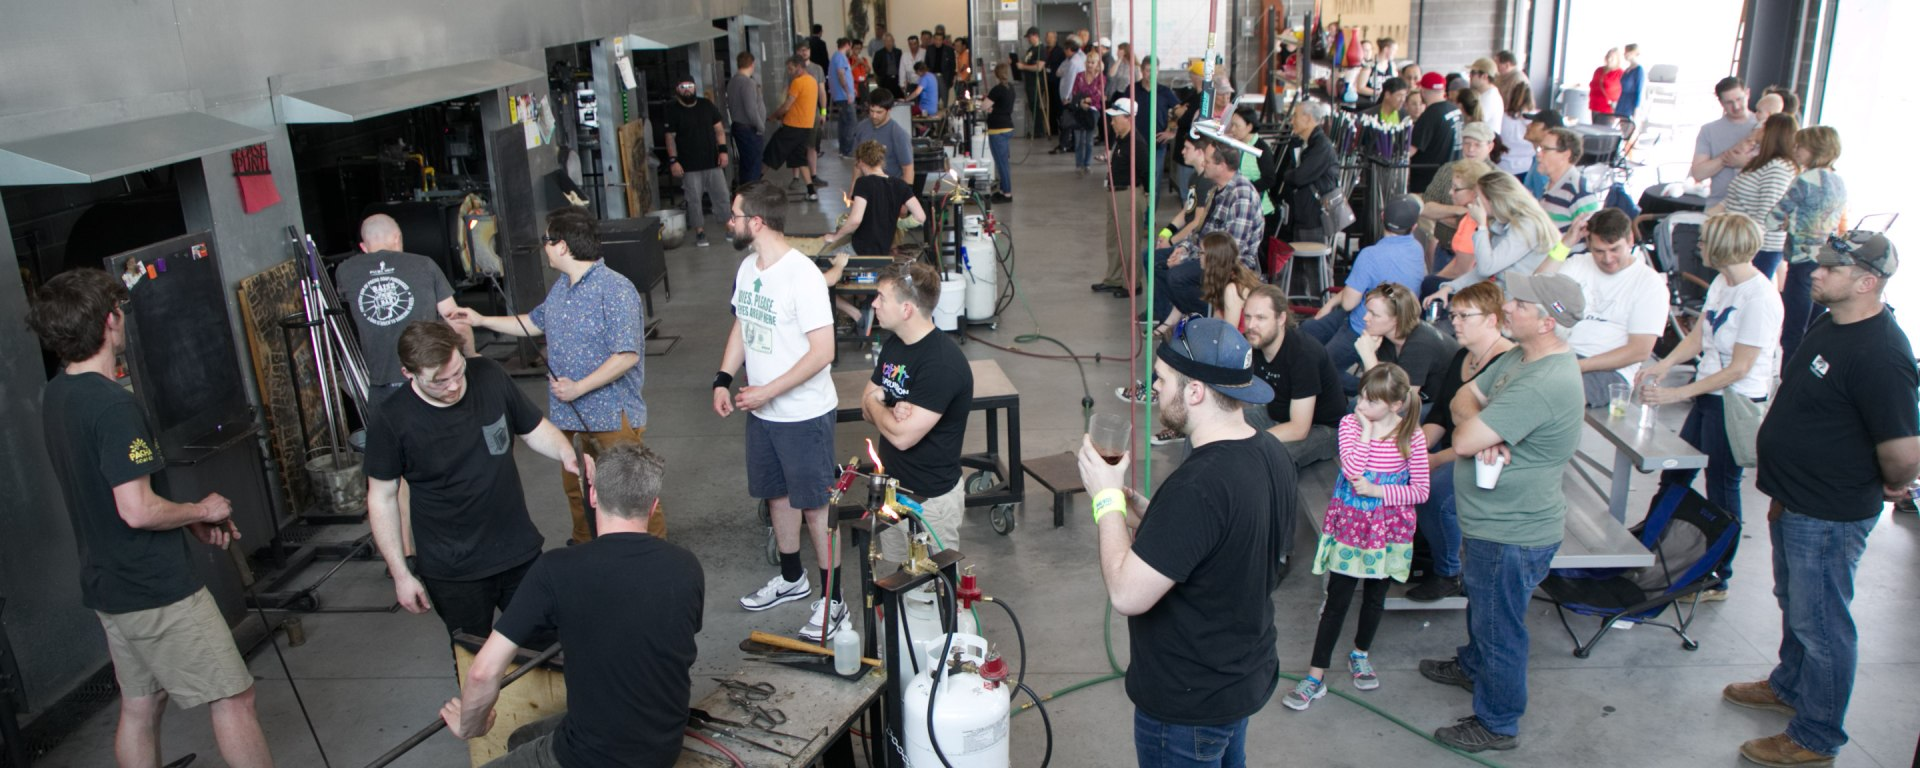 Around 150 people filled the JDAC on April 6 to blow glass and raise funds for Kreager.